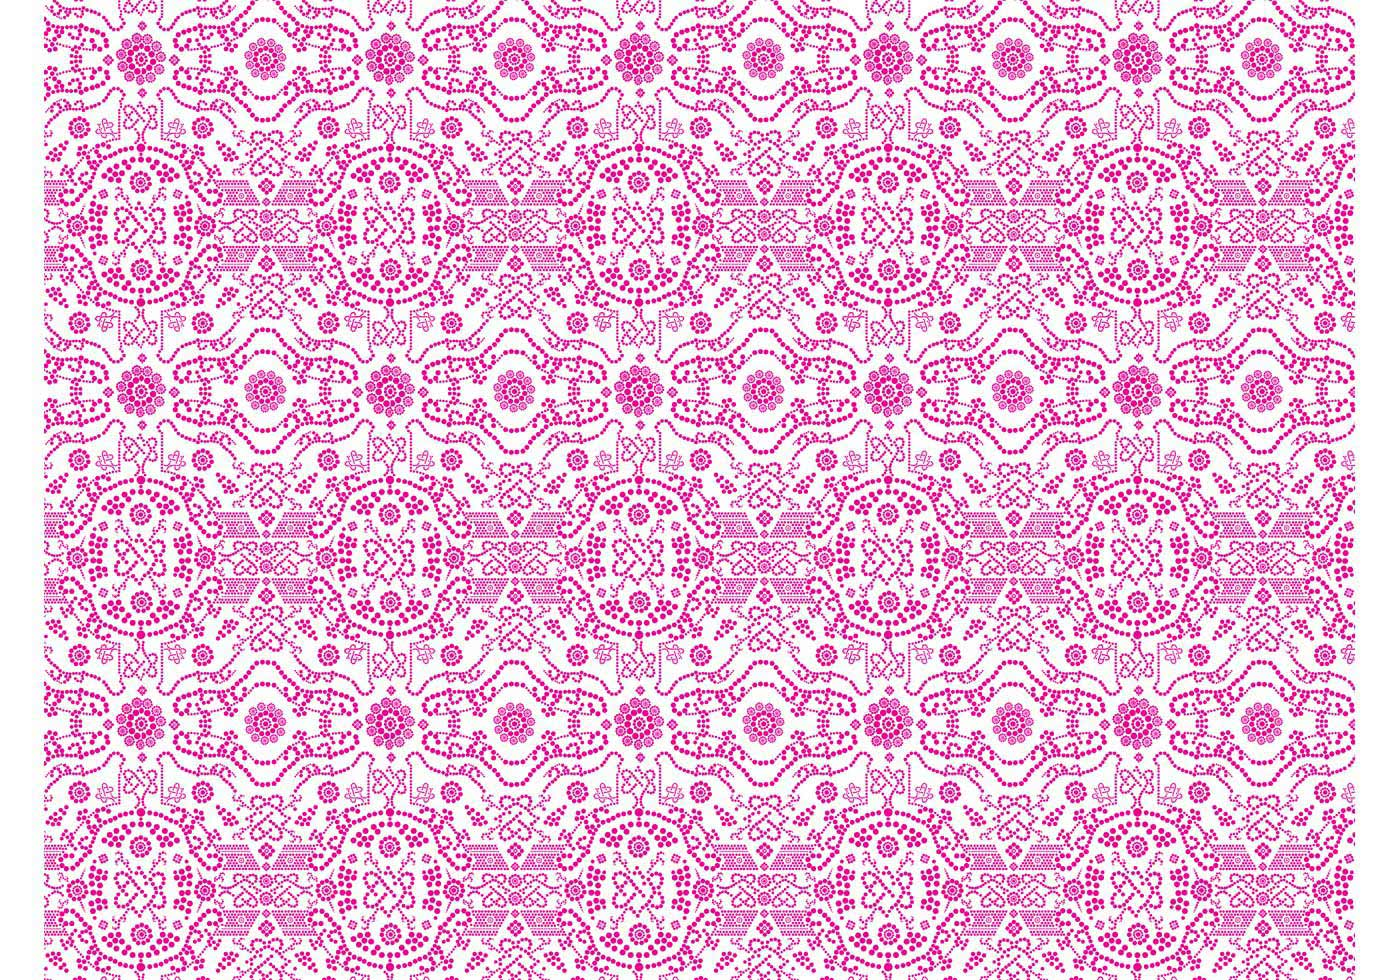 Afraid, that Free abstract floral pattern are not